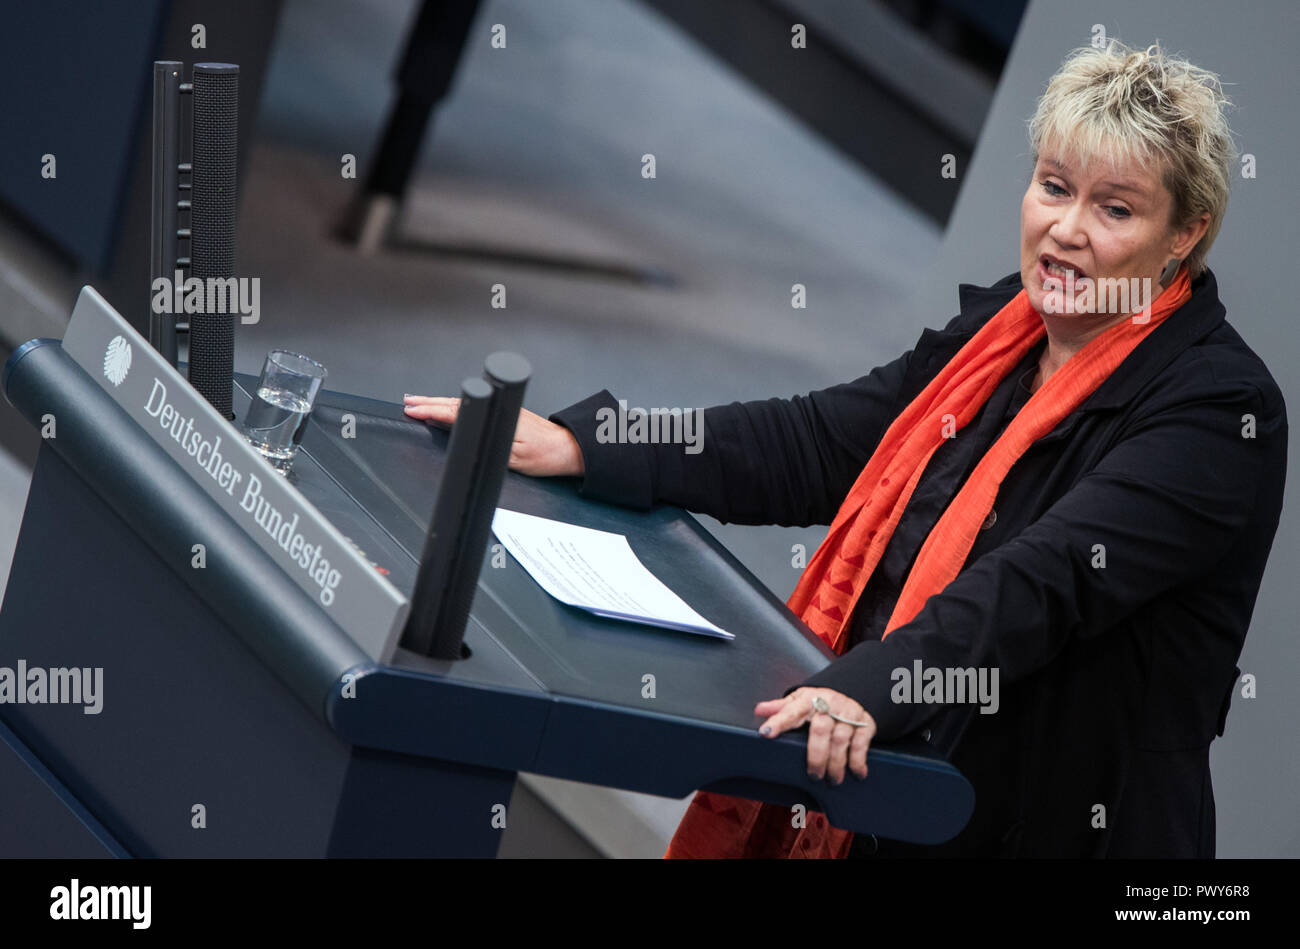 Berlin, Germany. 18th Oct, 2018. Gabriela Heinrich, member of the Bundestag of the SPD parliamentary group, speaks in the Bundestag. Credit: Jens Büttner/dpa-Zentralbild/dpa/Alamy Live News - Stock Image